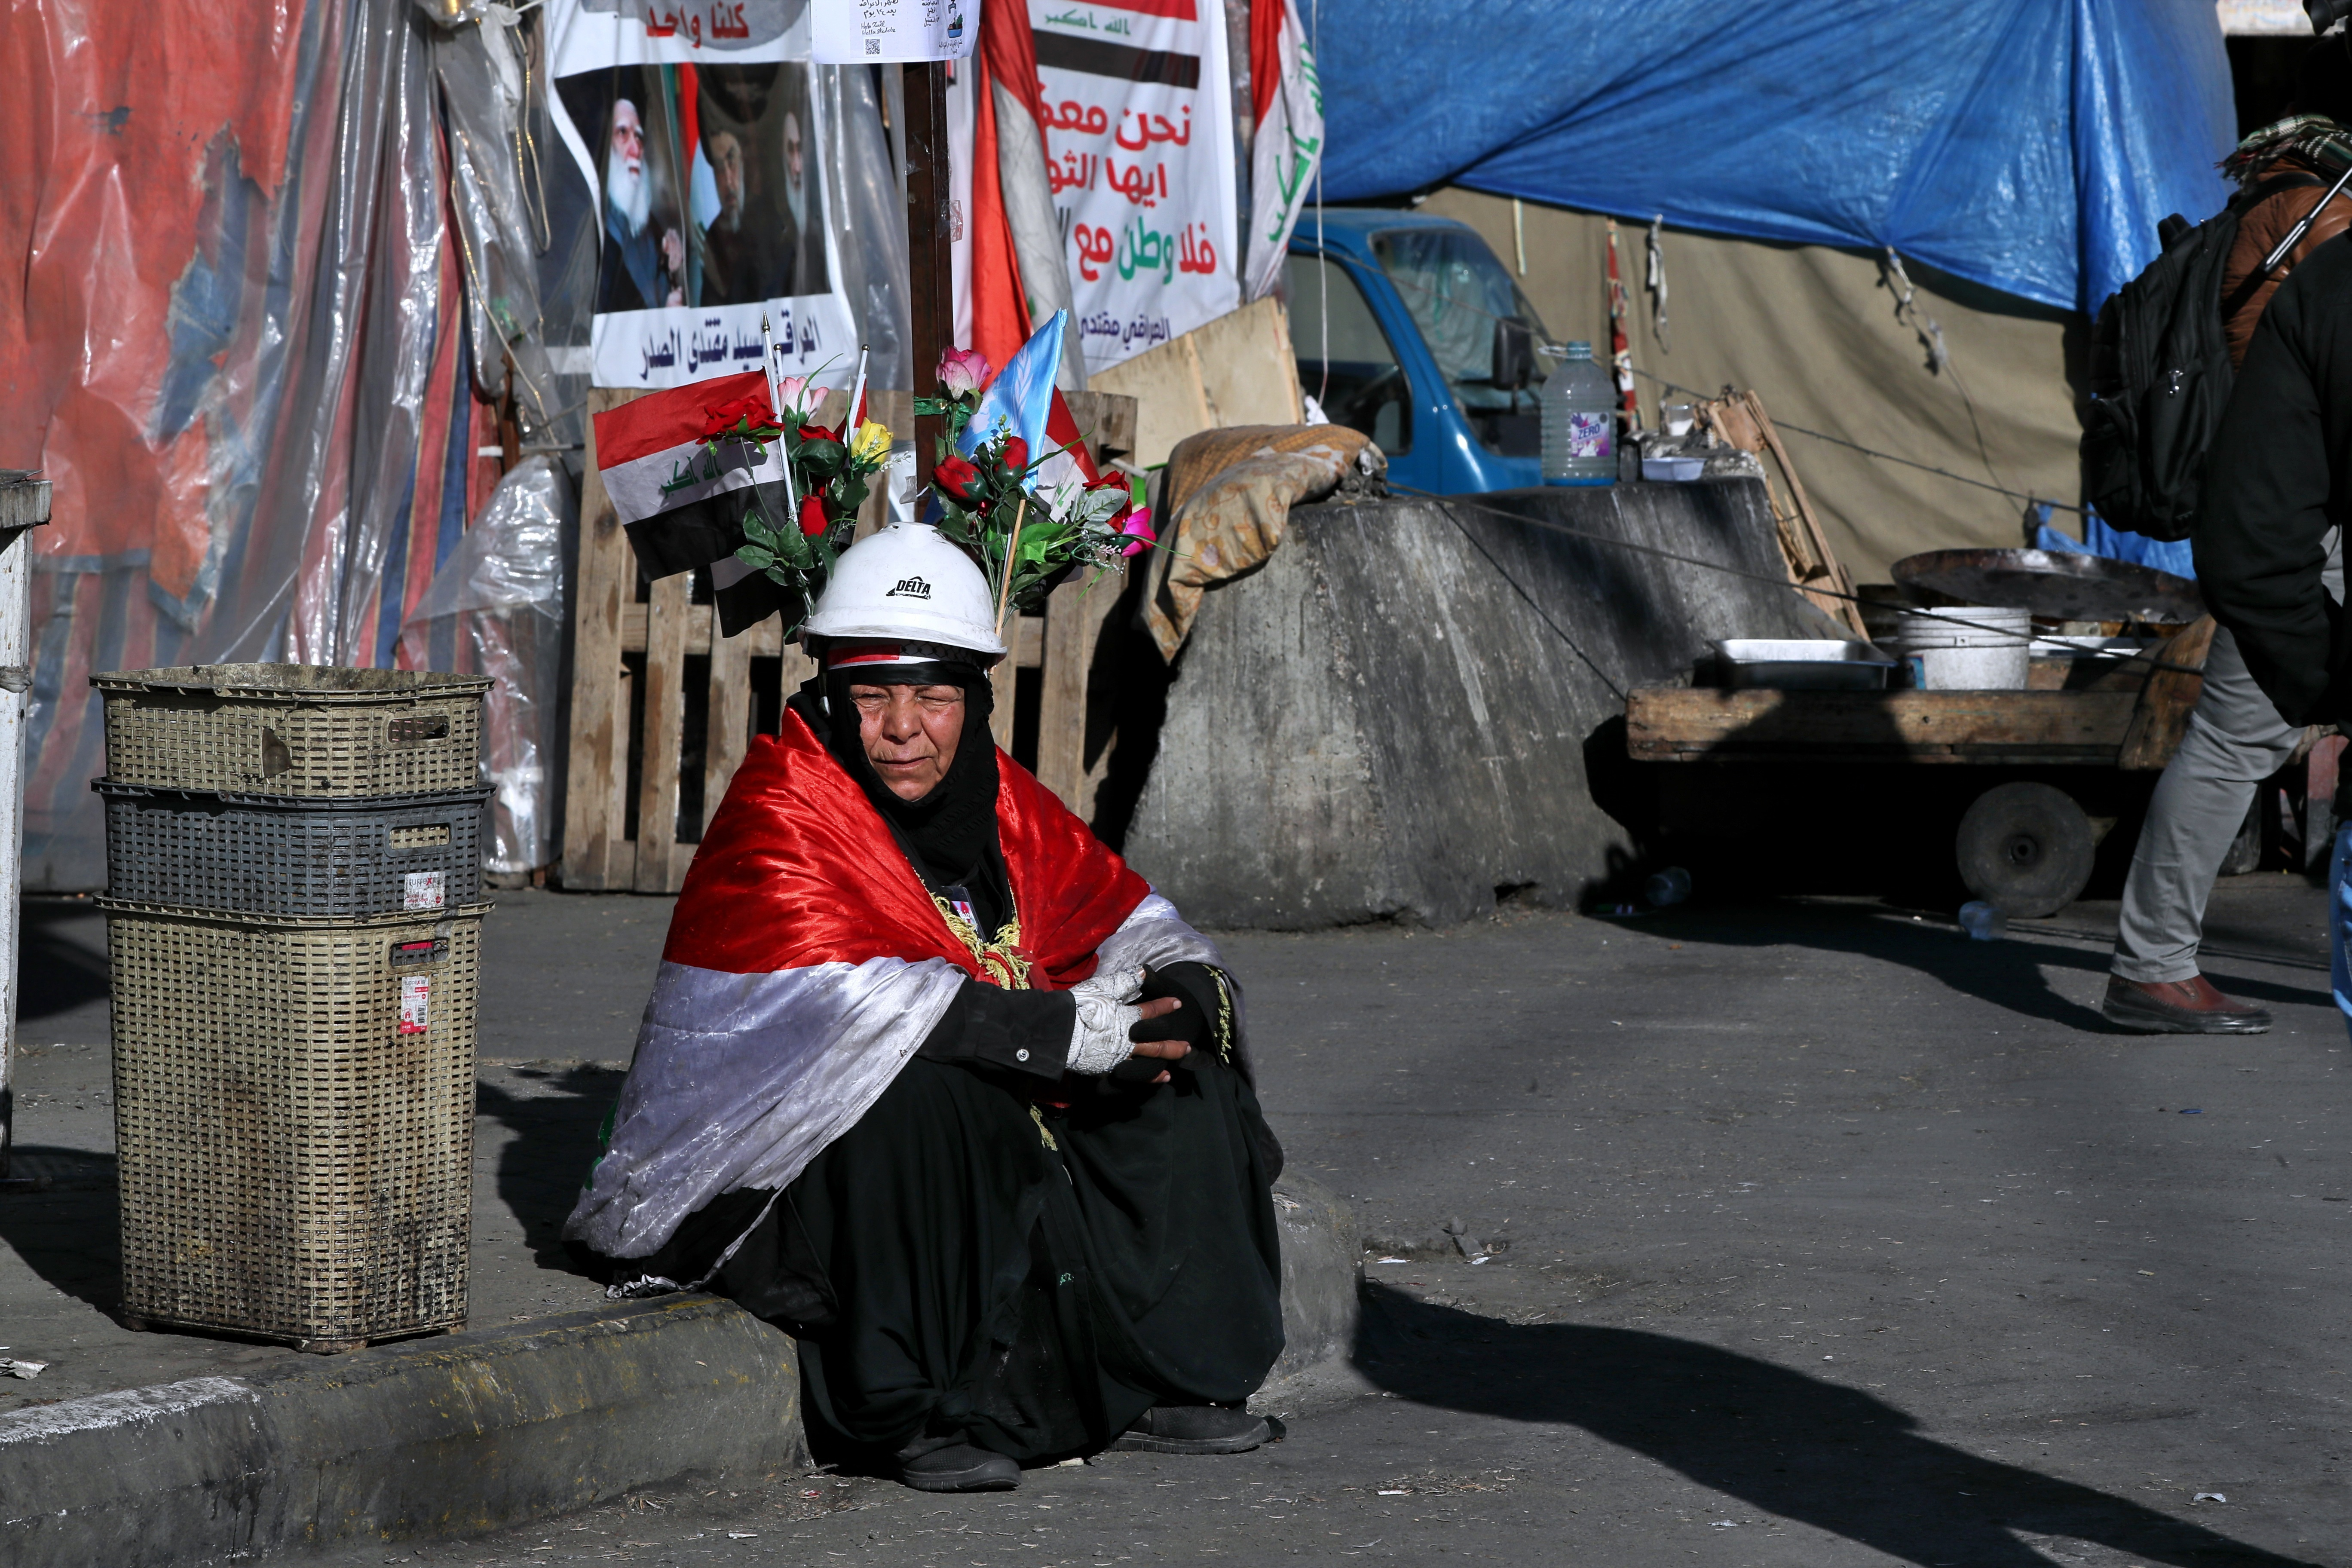 A woman takes part in the ongoing anti-government protests in Tahrir Square, Baghdad, Iraq, on Feb. 1, 2020.